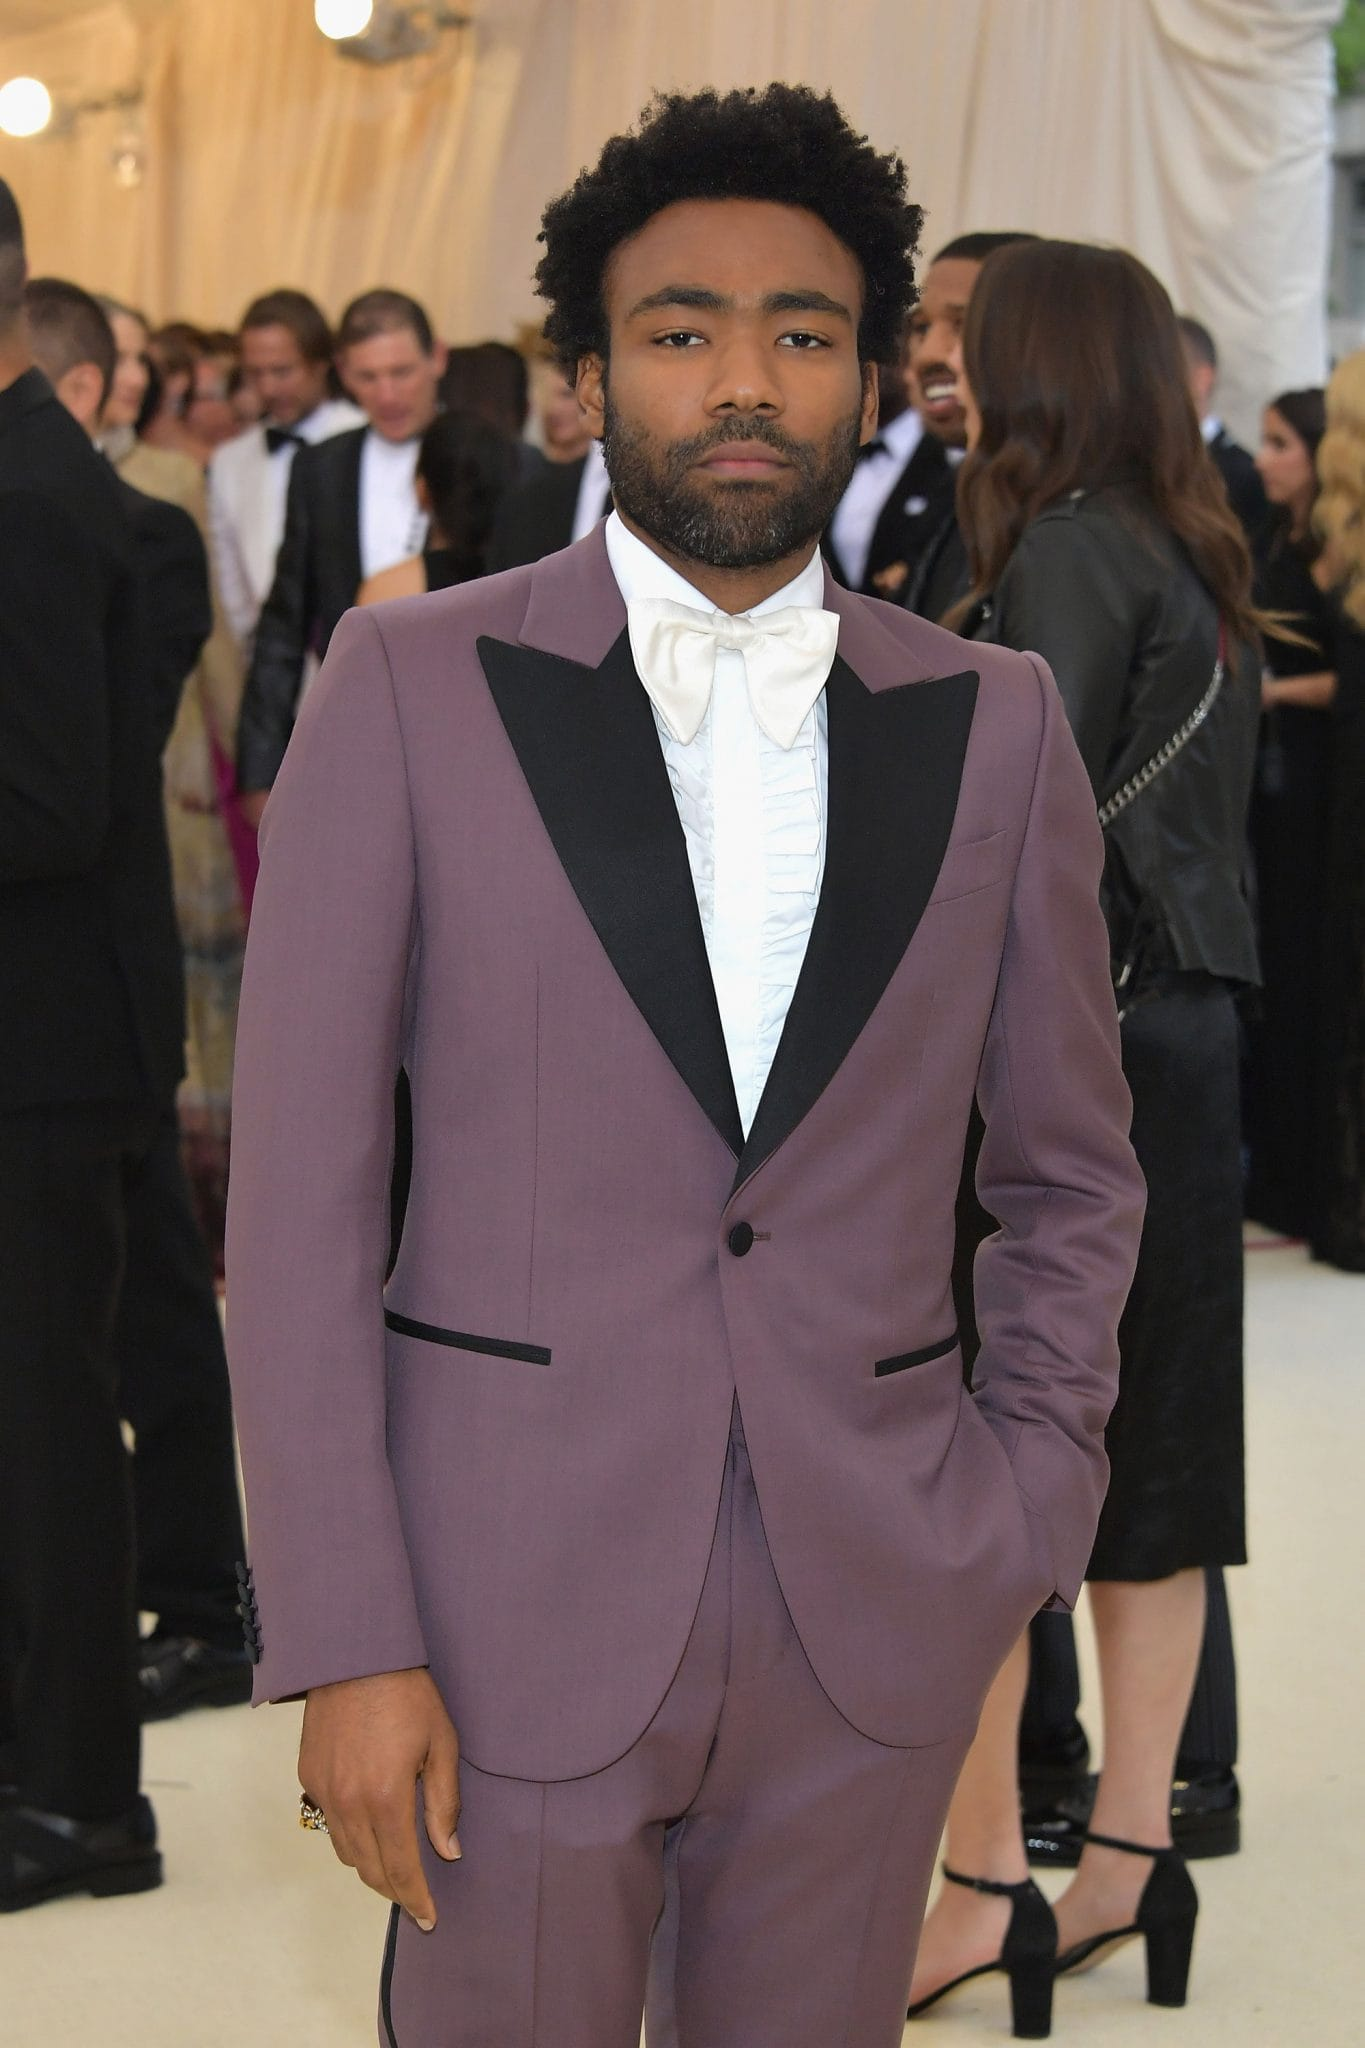 Donald Glover at the Met Gala 2018